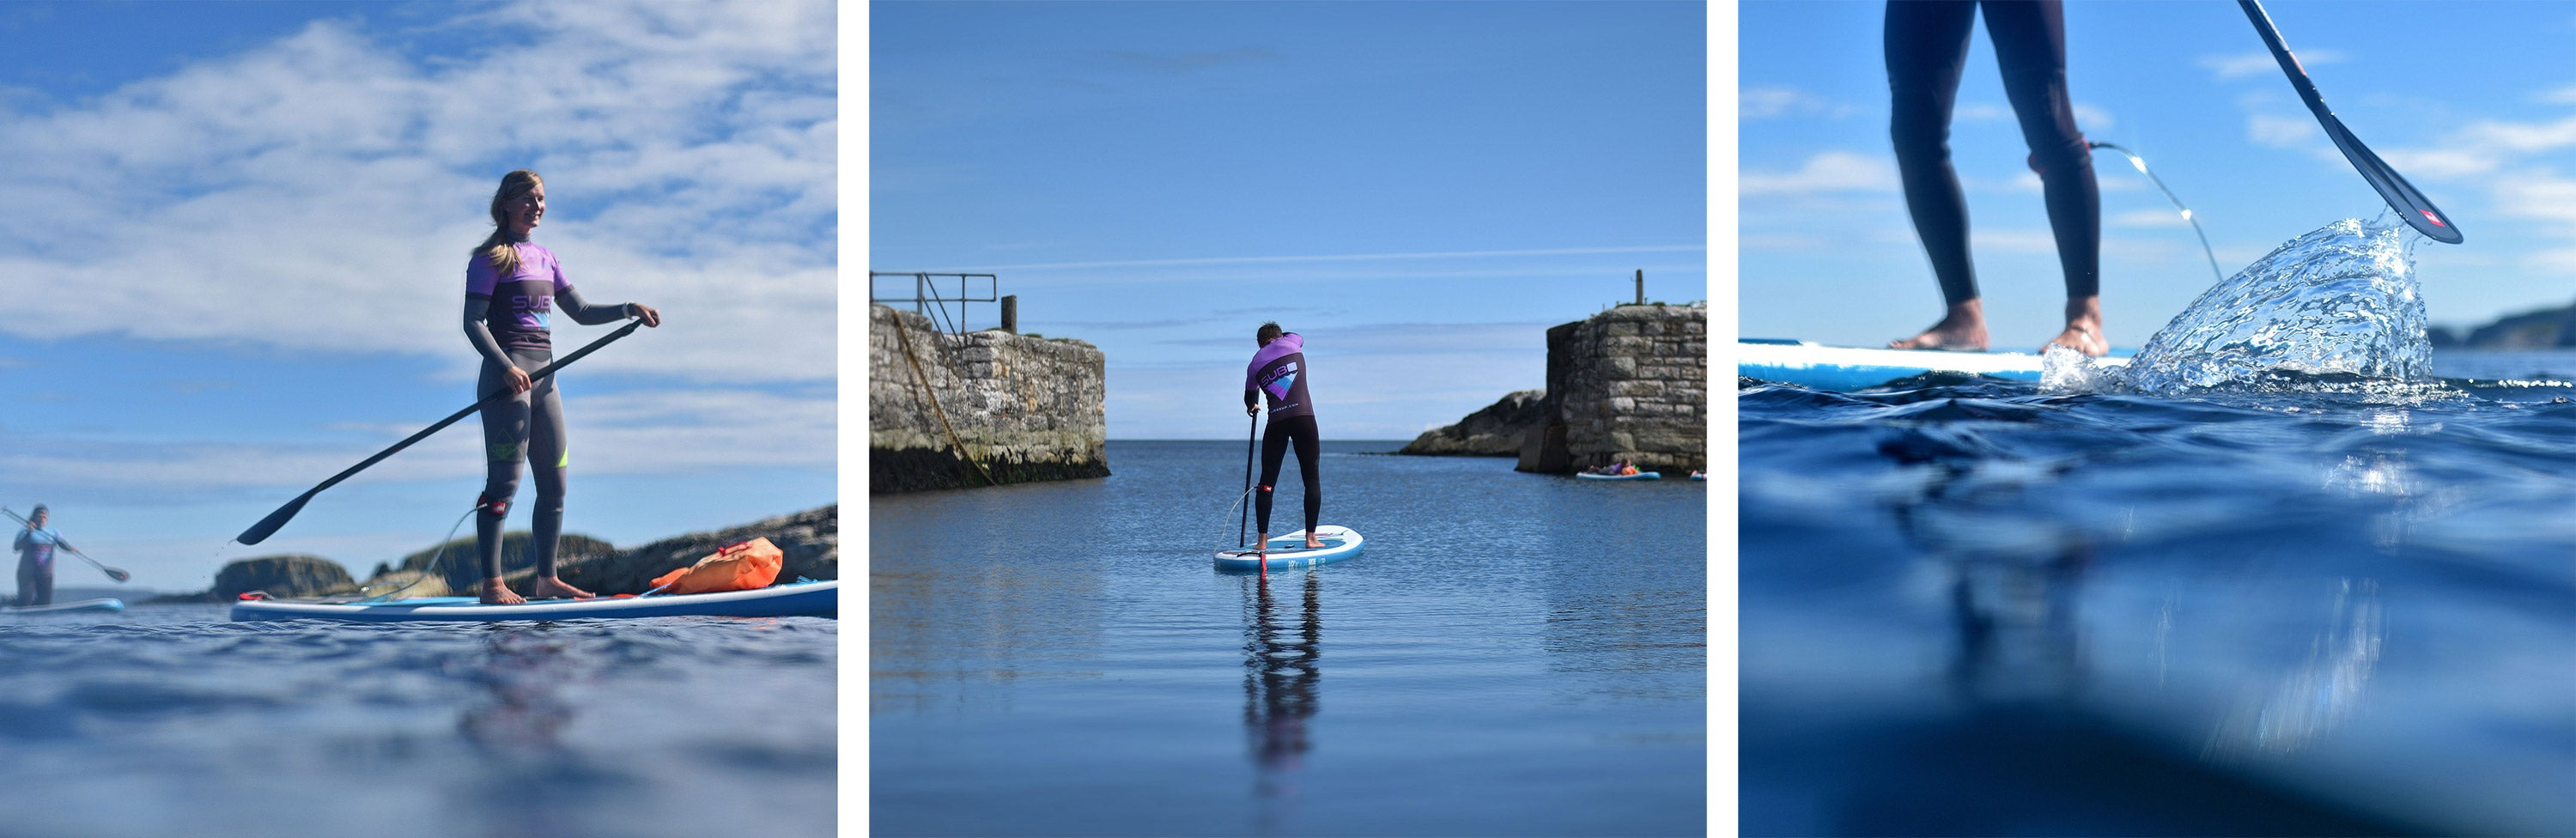 SUB6 - Stand Up Paddle Lessons & Tours Portrush